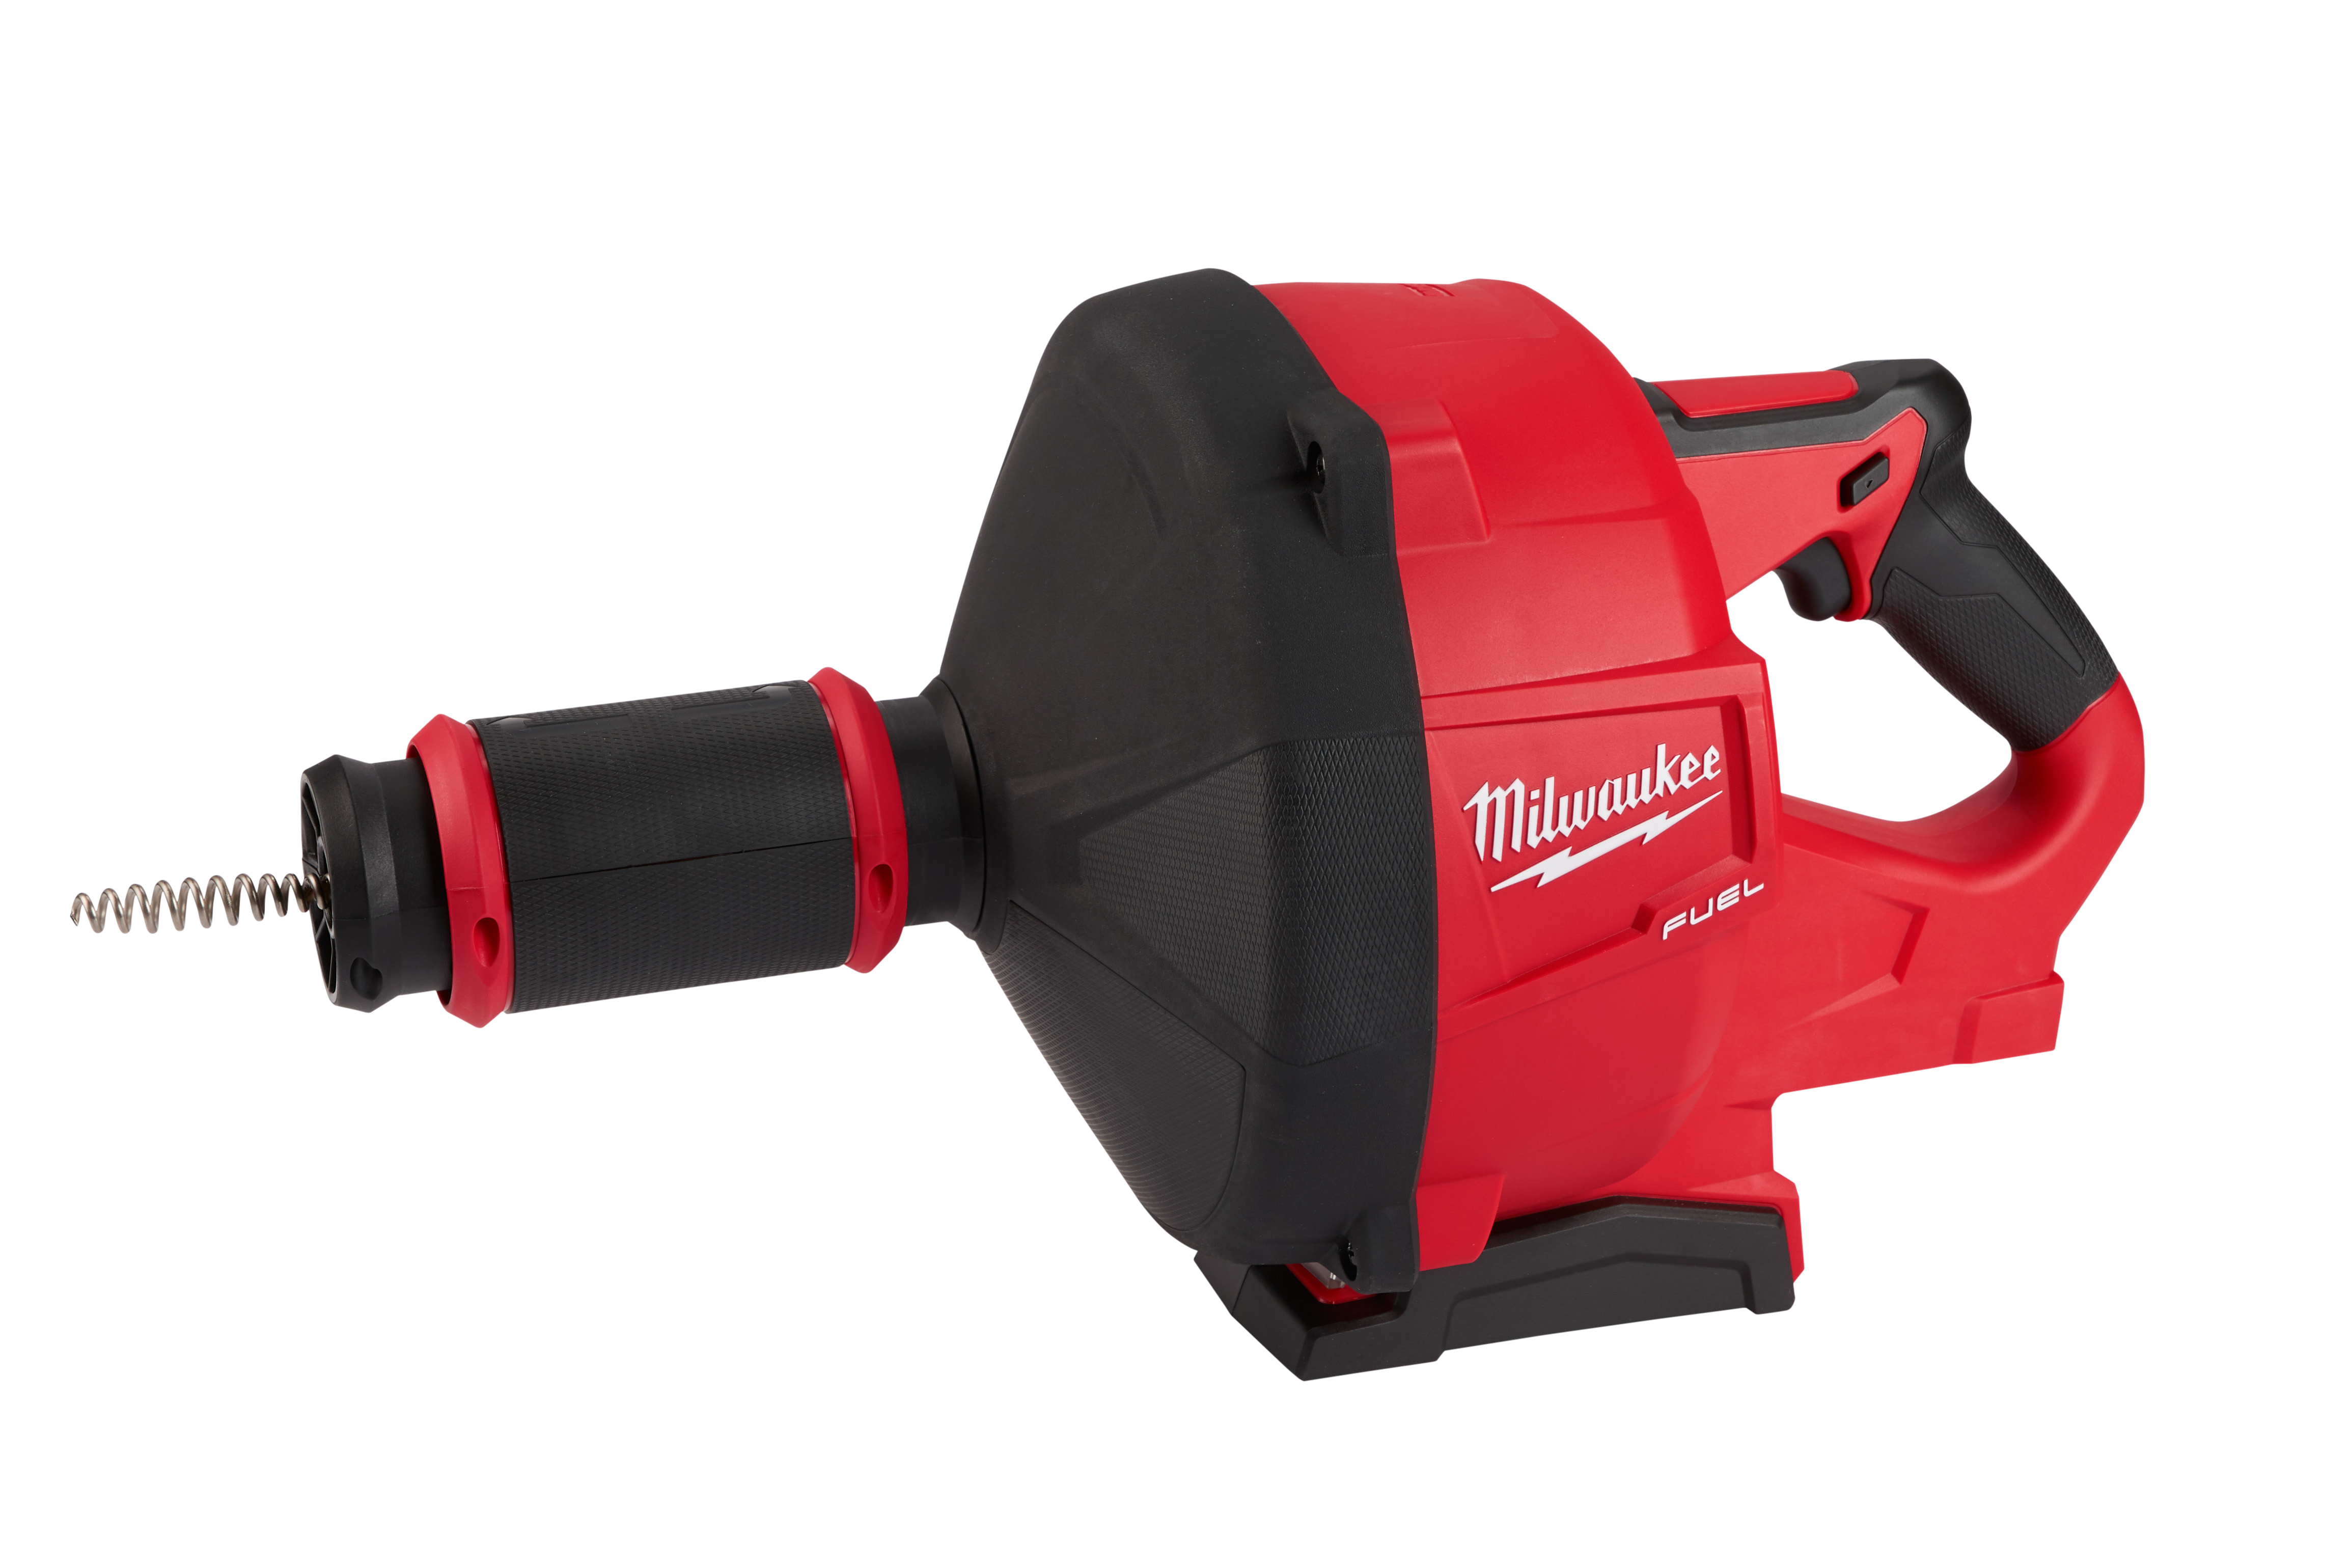 Milwaukee® M18™ FUEL™ 2772A-20 Cordless Drain Gun With CABLE-DRIVE™ Locking Feed System, 1-1/4 to 3 in Drain Line, 50 ft Max Run, 18 VDC, Plastic Housing